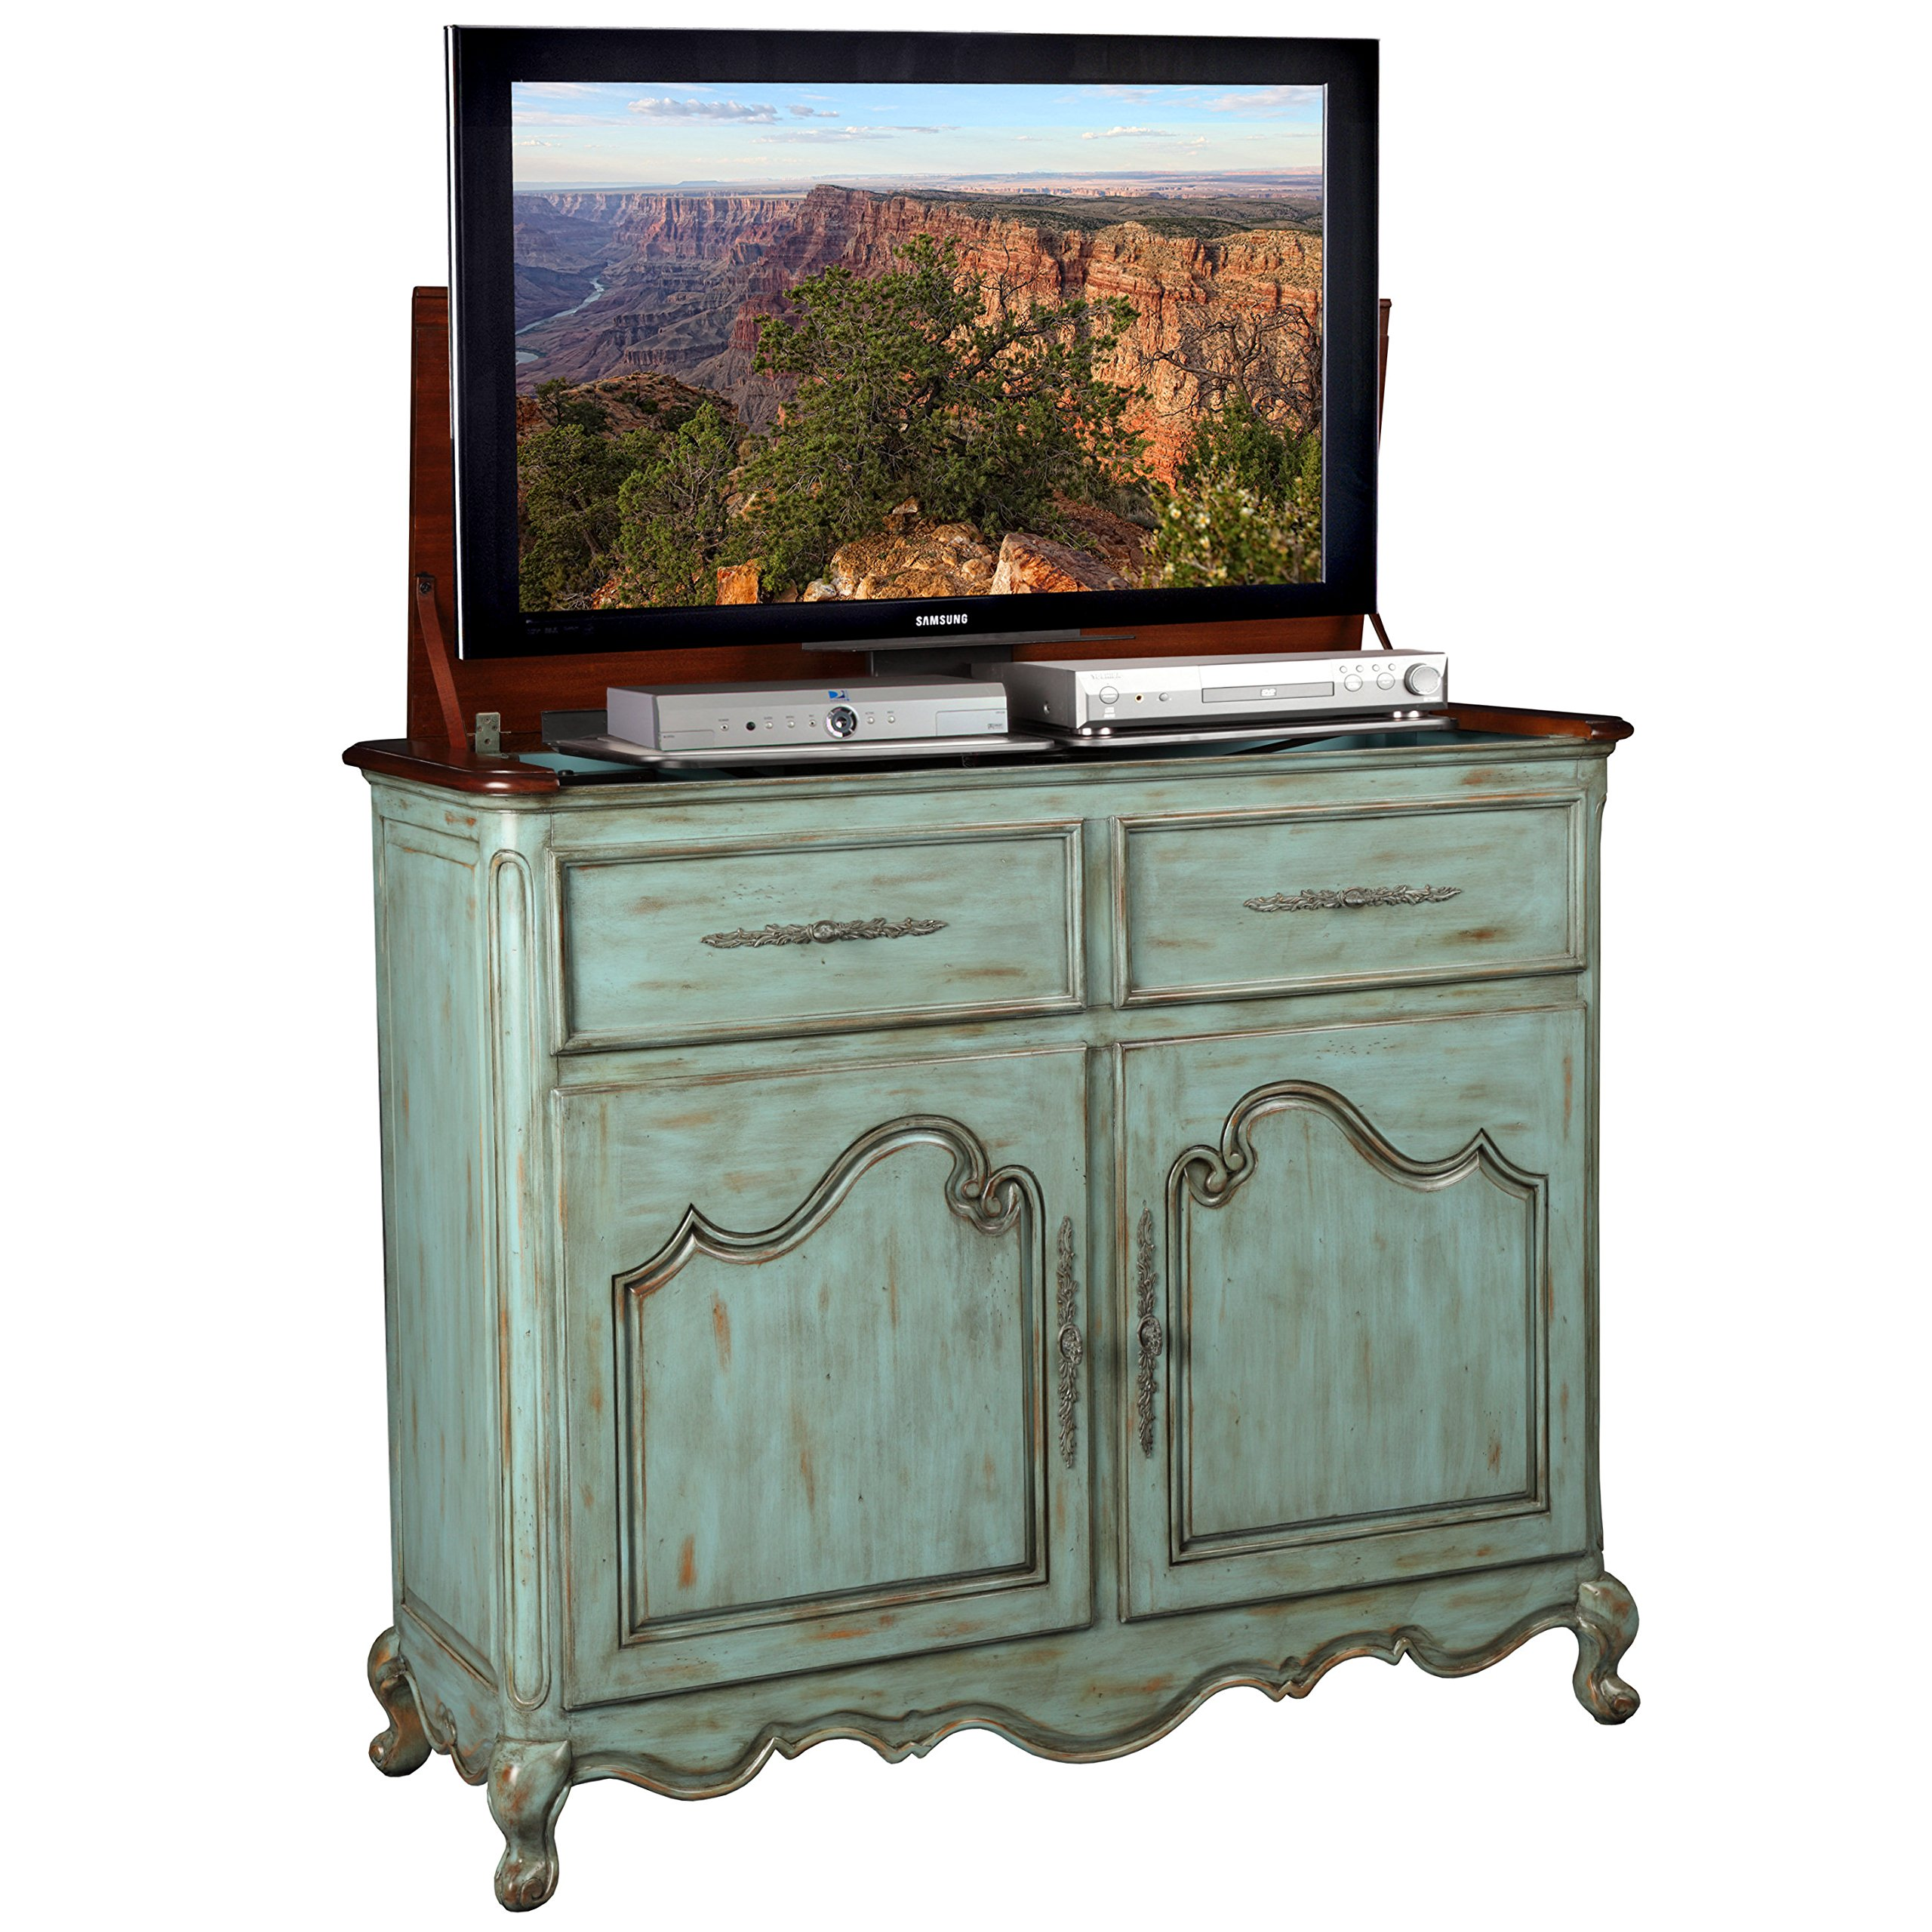 Get Quotations · TV Lift Cabinet For 32 46 Inch Flat Screens (Weathered  Blue) AT006332